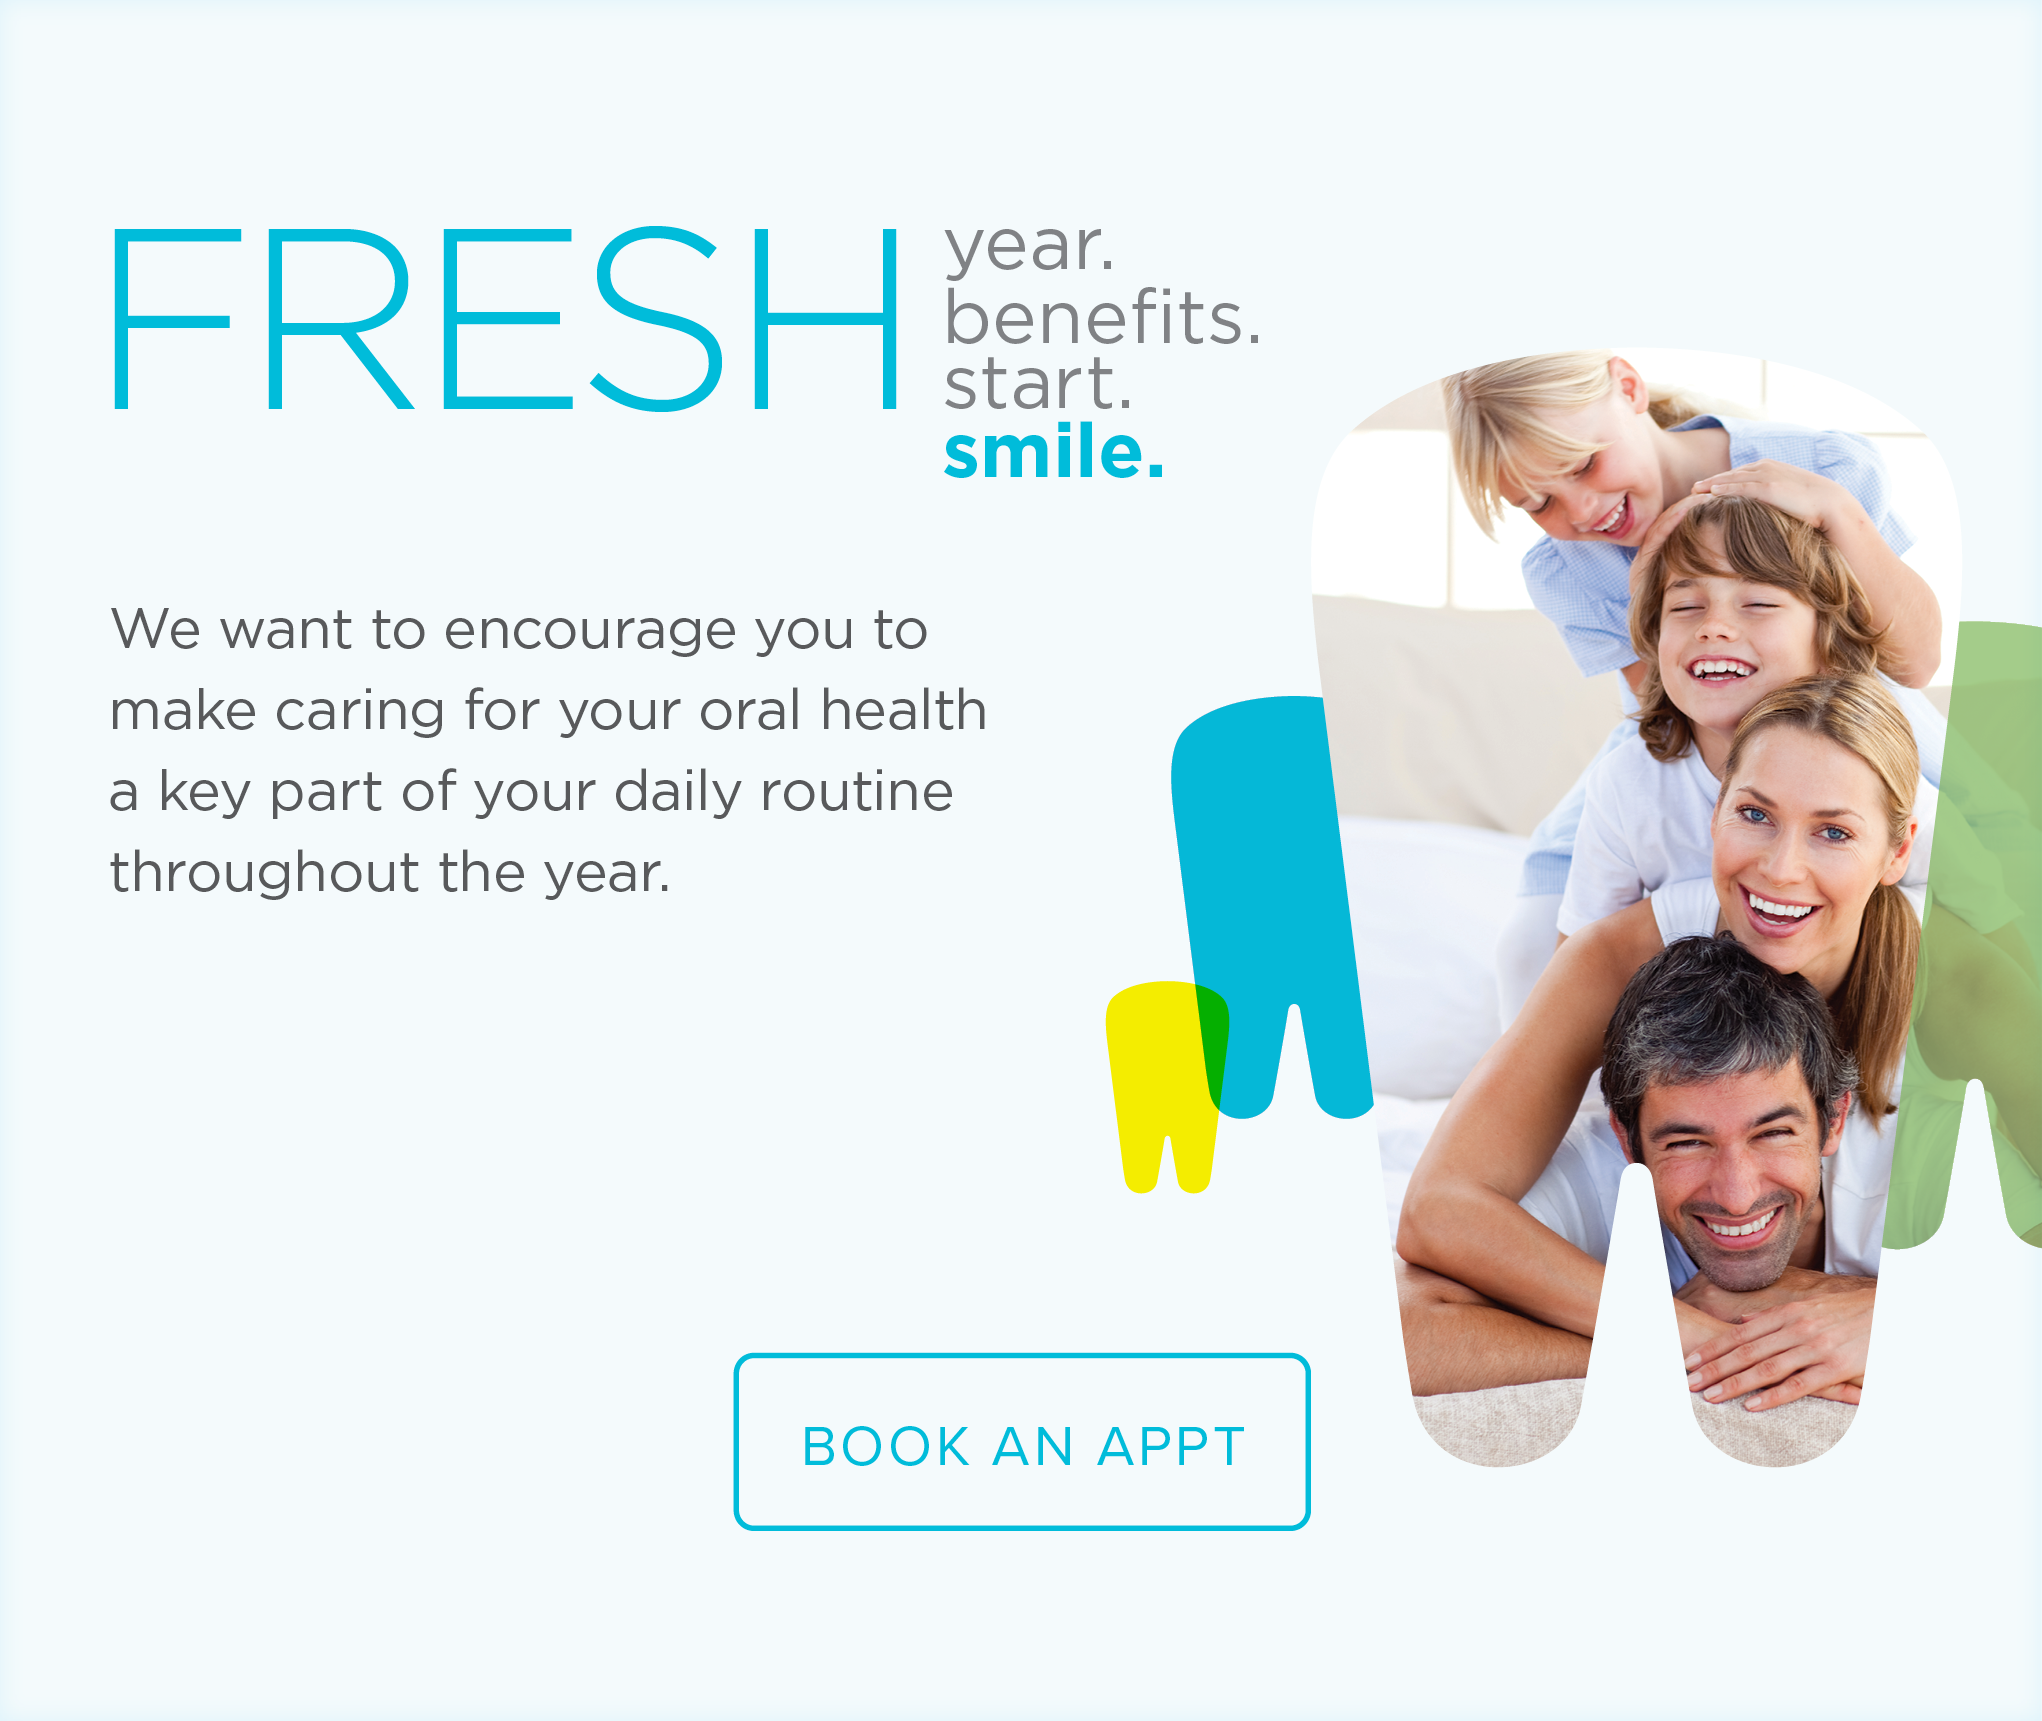 Sahuarita Modern Dentistry and Orthodontics - Make the Most of Your Benefits